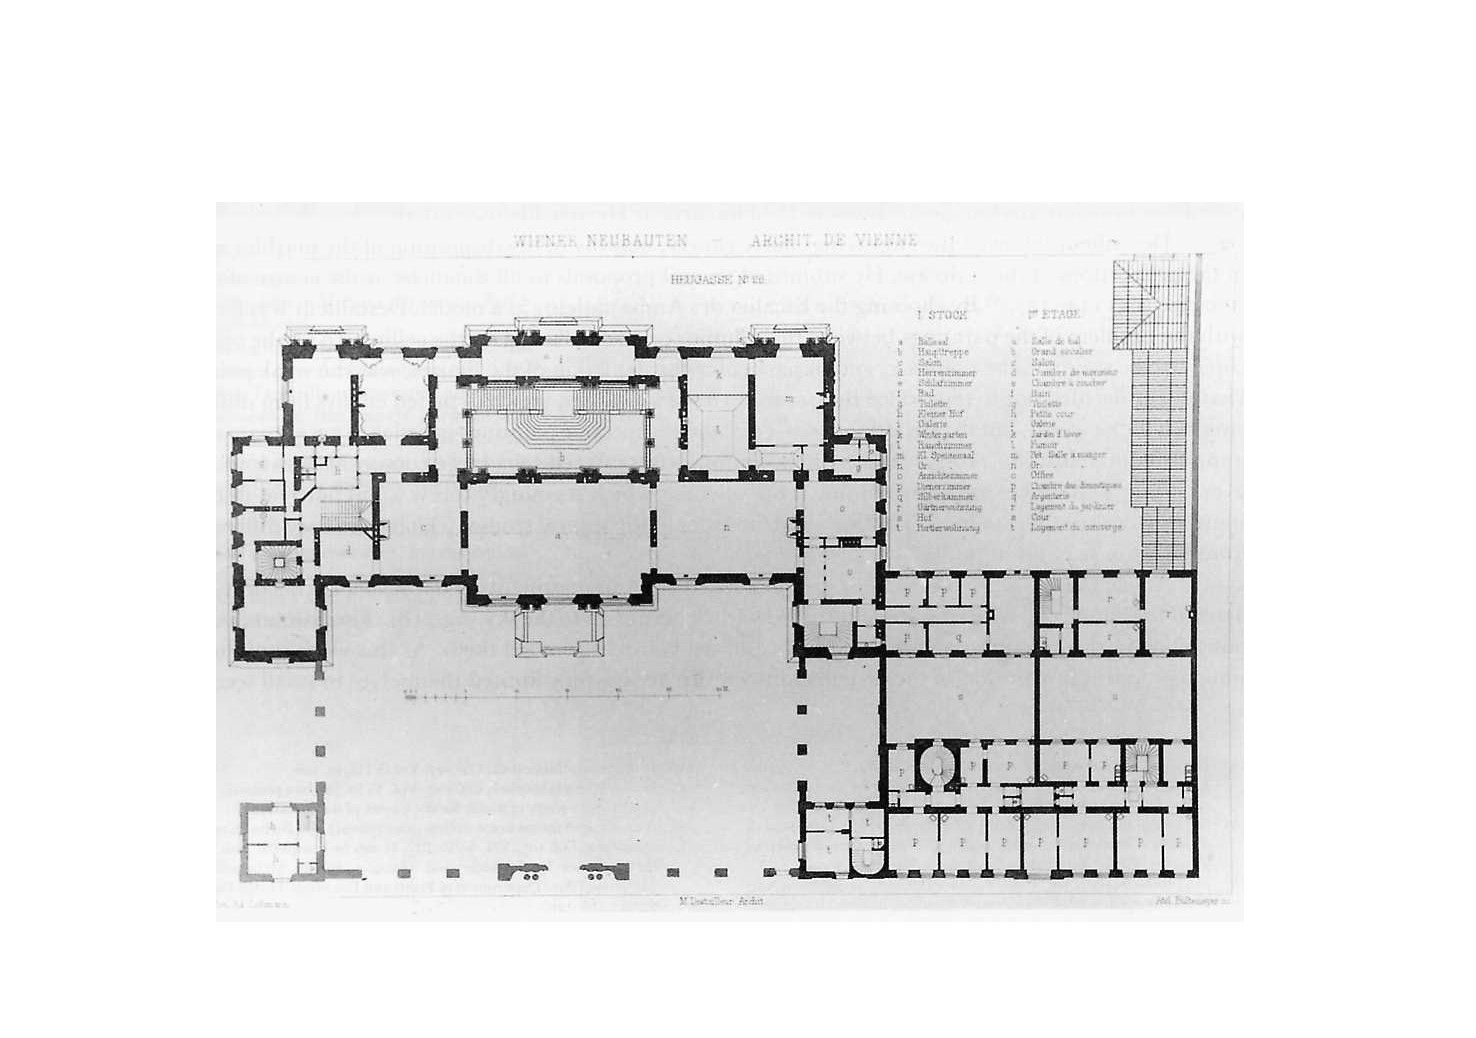 521010250616558494 on loudoun castle floor plan